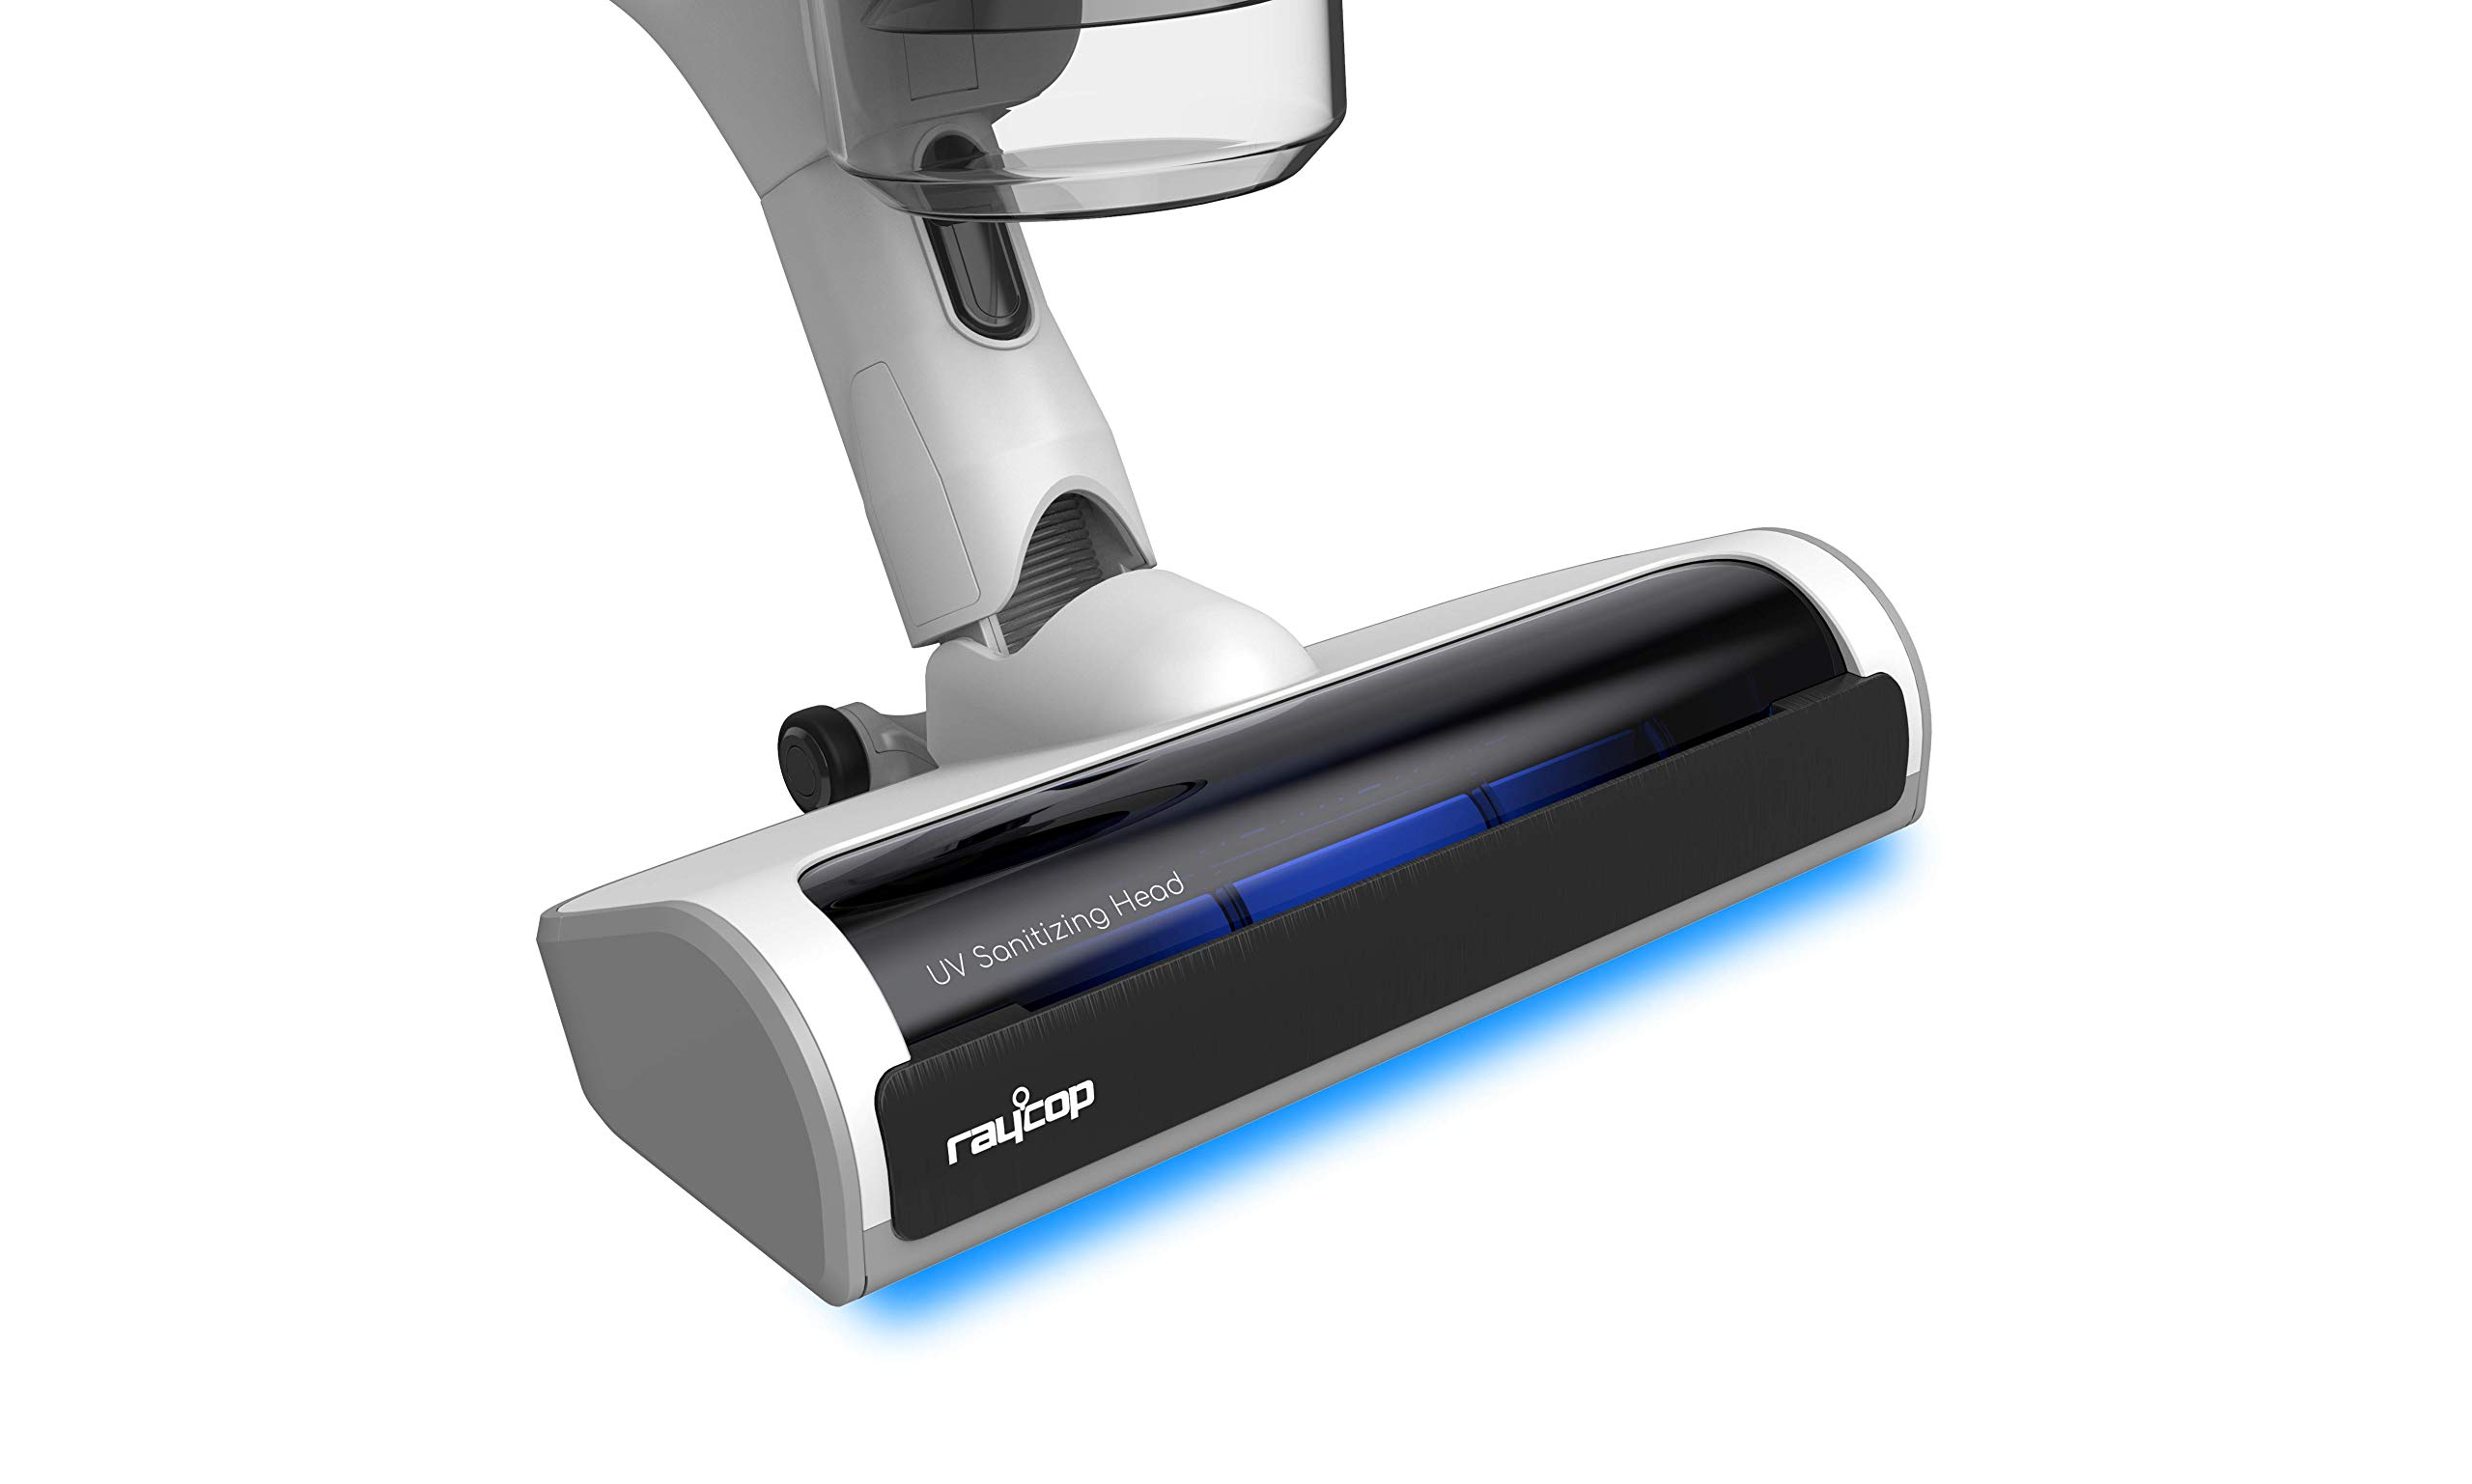 RAYCOP Omni Power UV Head Attachment Removes 99.9% of Bacteria and Viruses